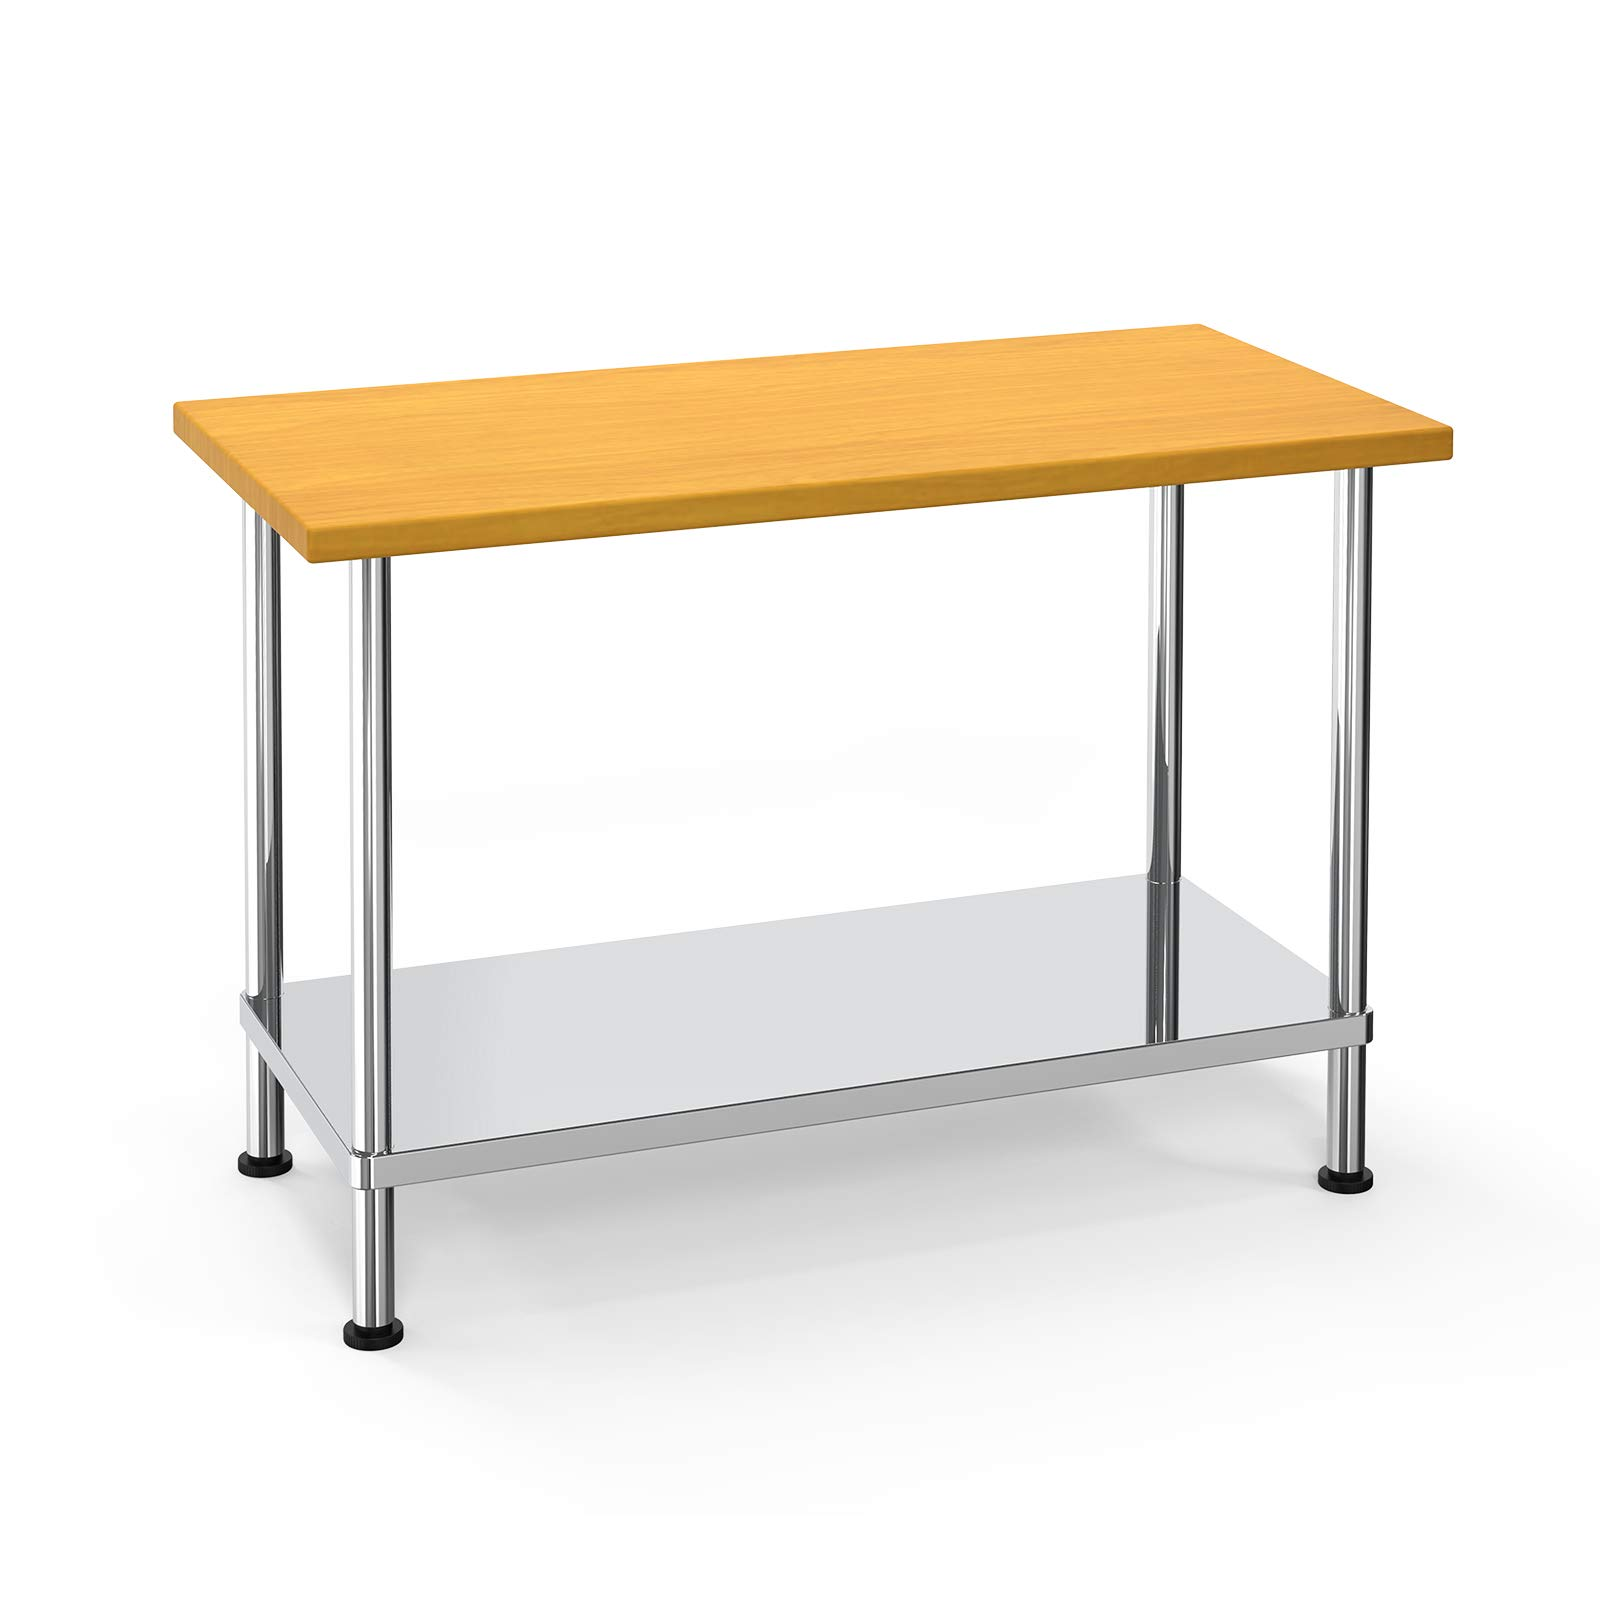 """Nurxiovo Maple Top Work Table, Commercial Prep Table with Adjustable Stainless Steel Base Shelf for Restaurant, Kitchen, 48"""" Long x 24"""" Wide x 36"""" Tall"""